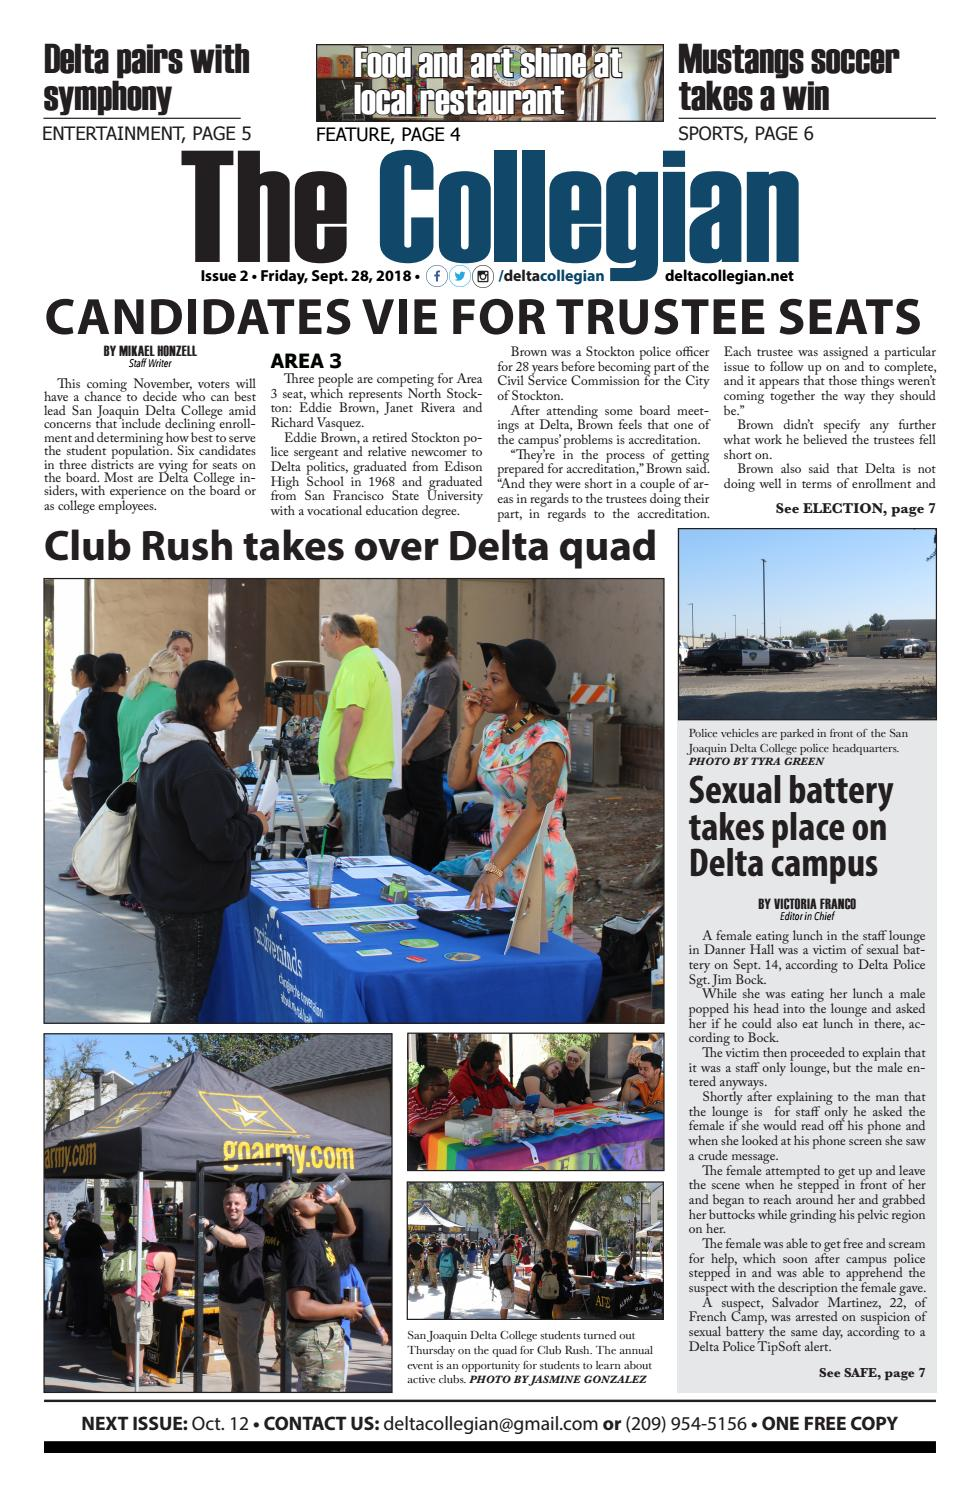 The Collegian -- Published Sept  28, 2018 by The Collegian